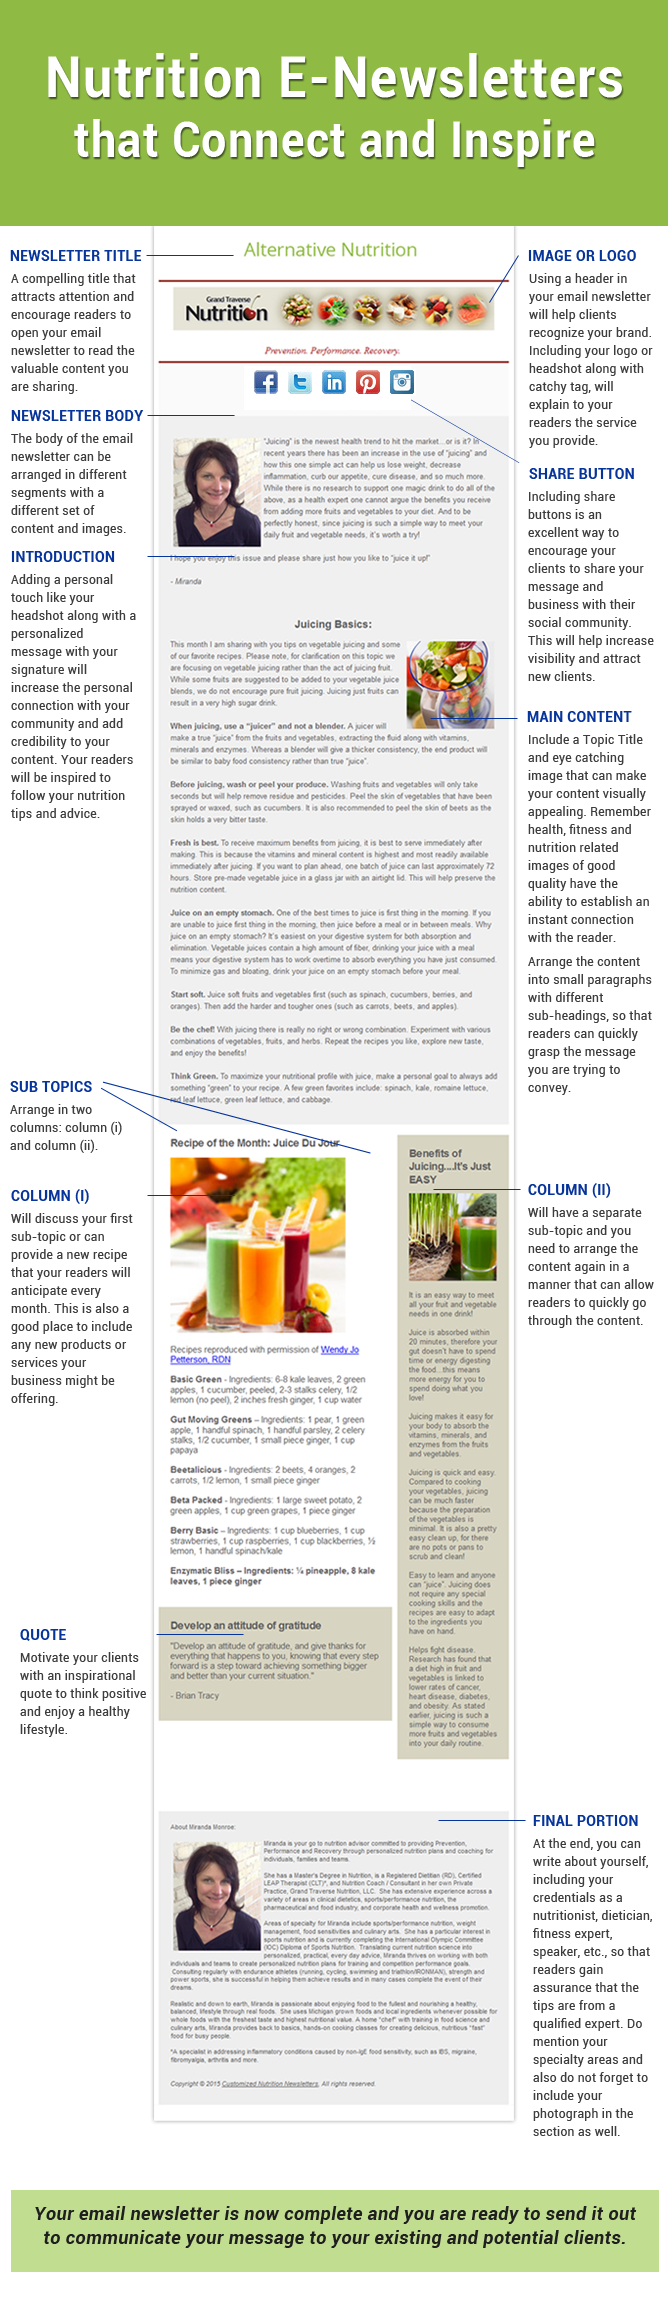 Nutrition Email Newsletters